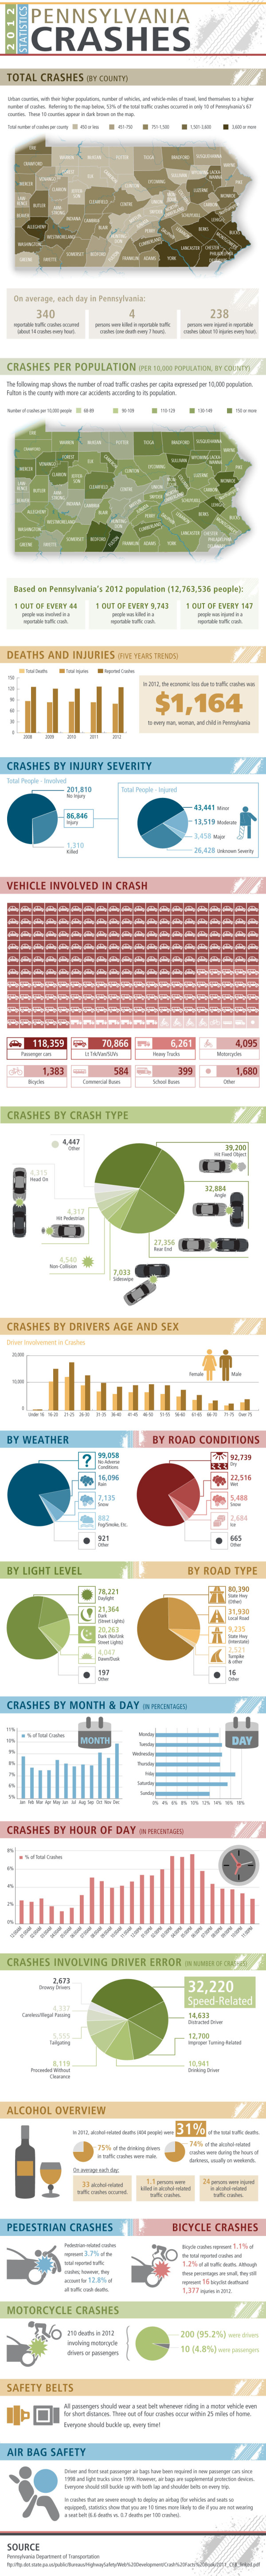 2012 Statistics: Pennsylvania Crashes infographic